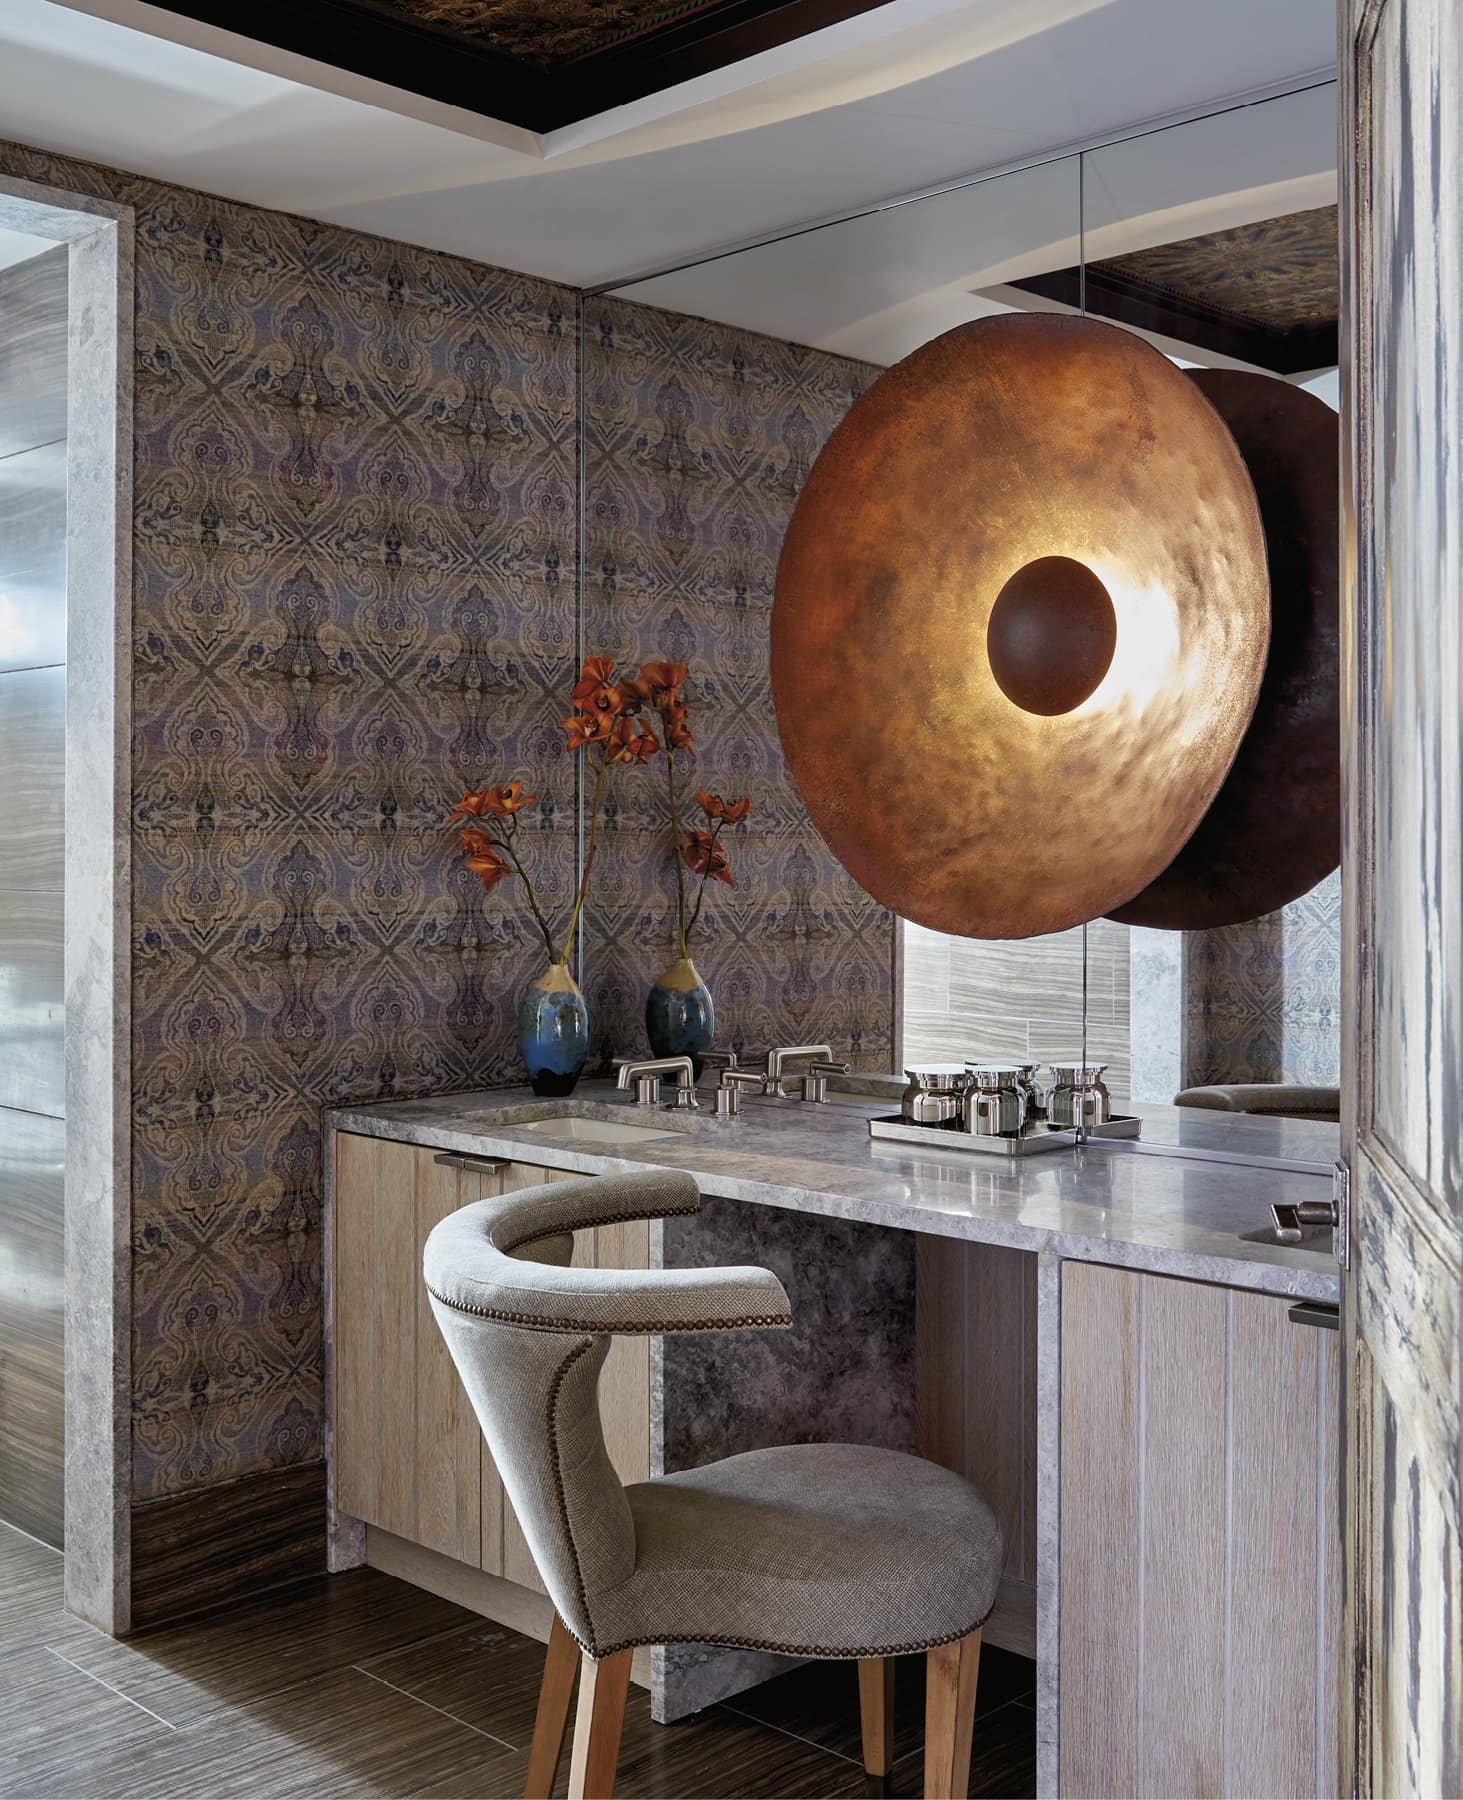 Bathroom vanity with a large decorative light on the mirror